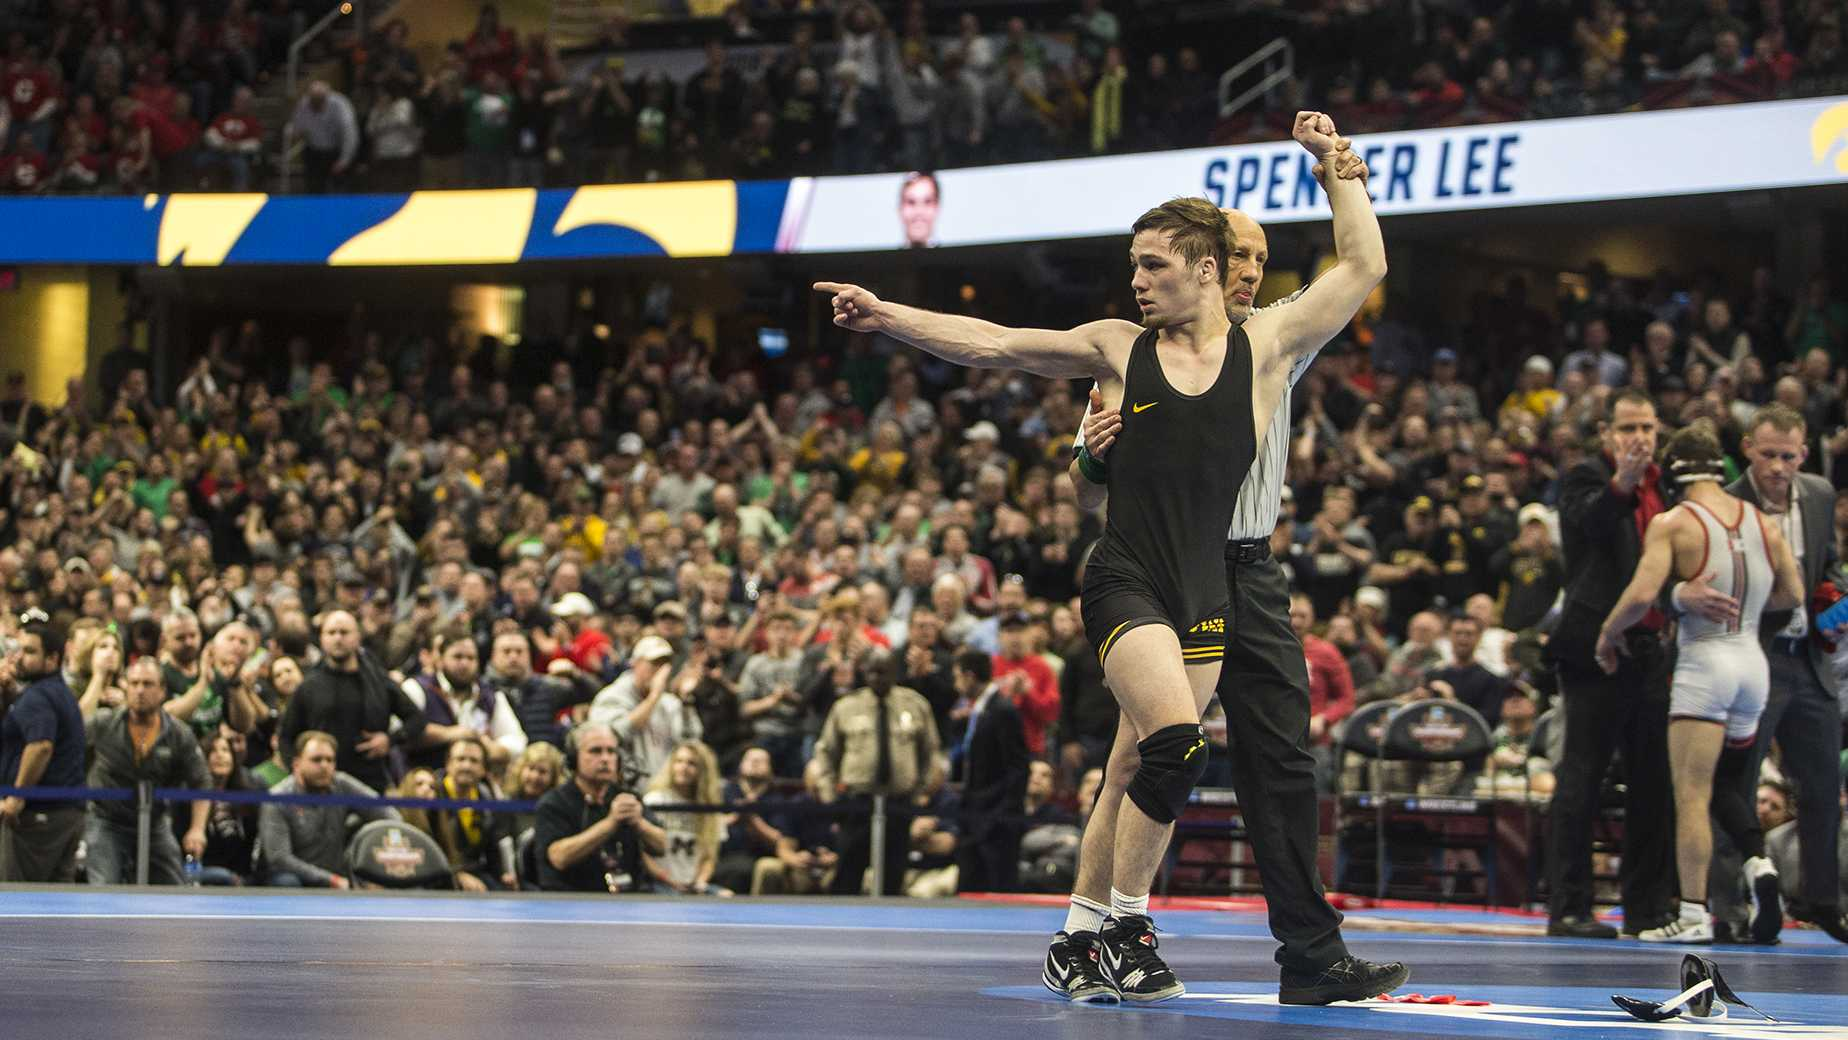 Iowa's Spencer Lee defeats Rutgers's Nick Suriano in the 125-pound final bout of the NCAA Wrestling Championships in Cleveland, OH. Lee beat Suriano by decision, 5-1. This is Lee's first national title. (Ben Allan Smith/The Daily Iowan)